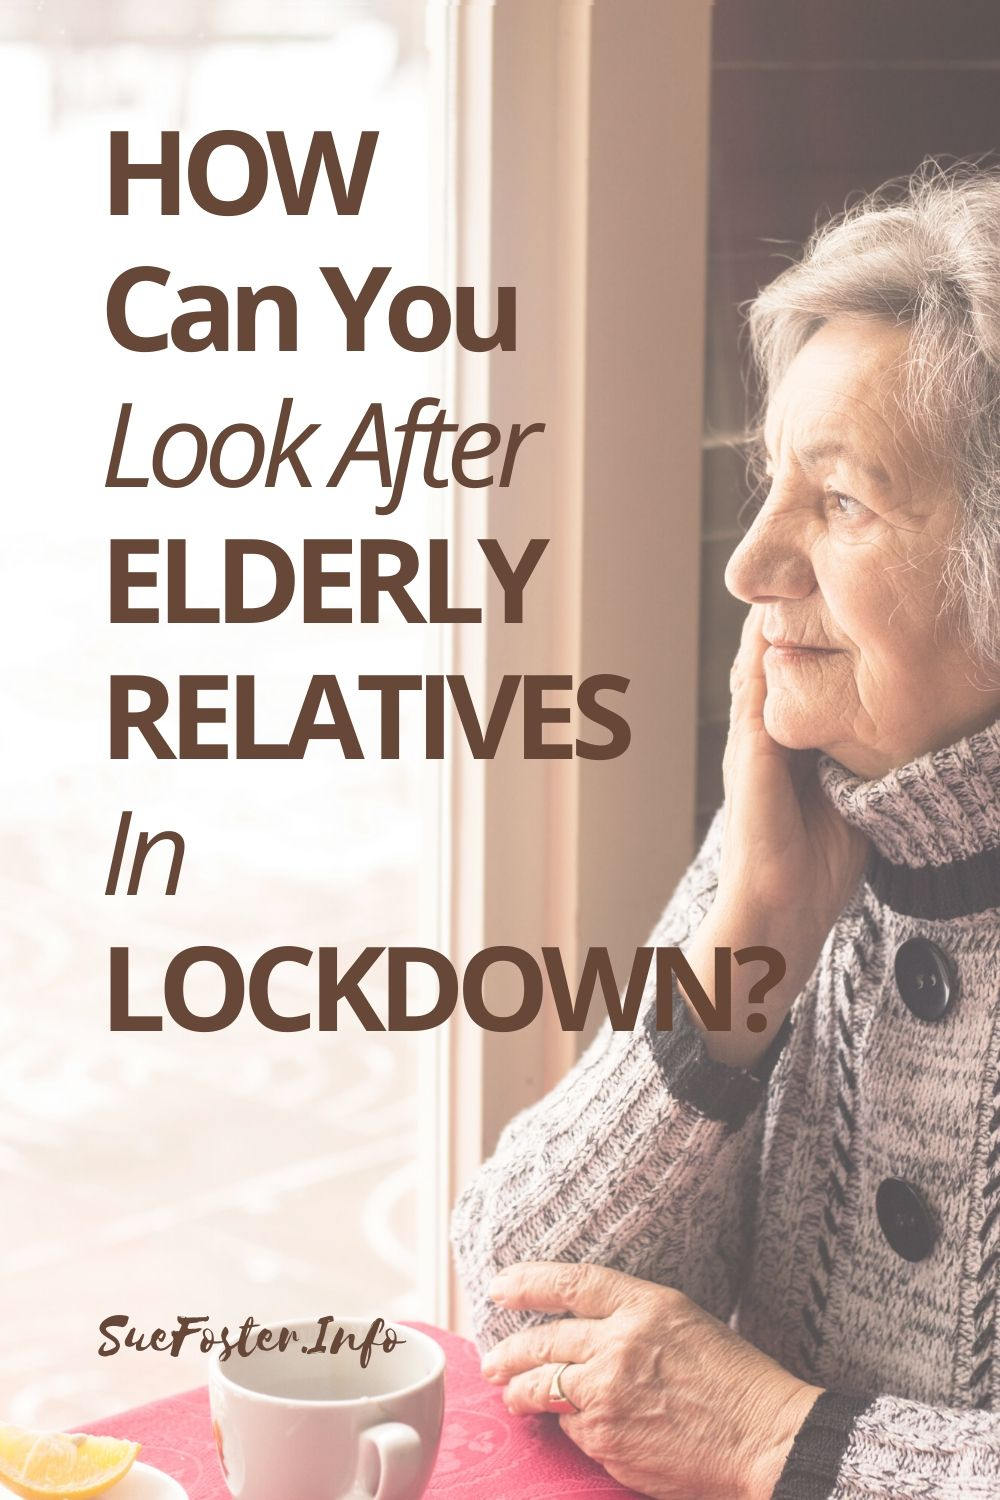 How Can You Look After Elderly Relatives In Lockdown?